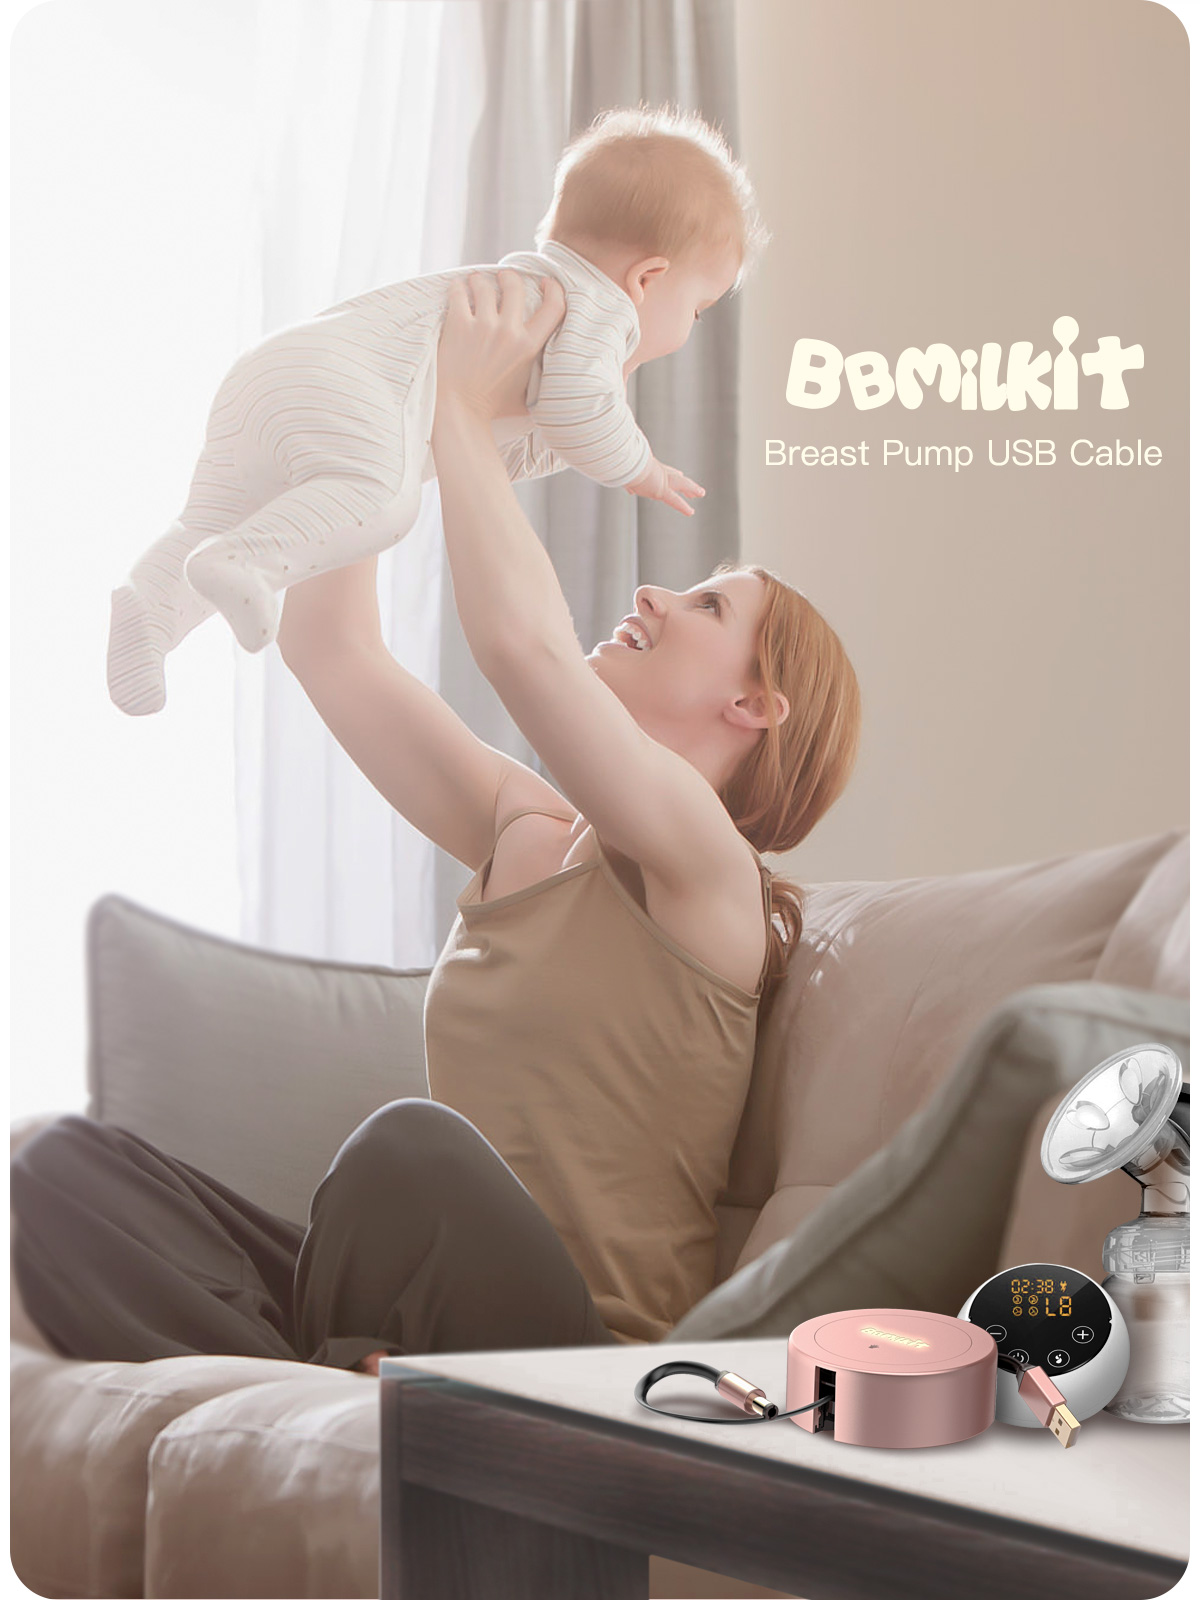 Bbmilkit breast pump usb cable